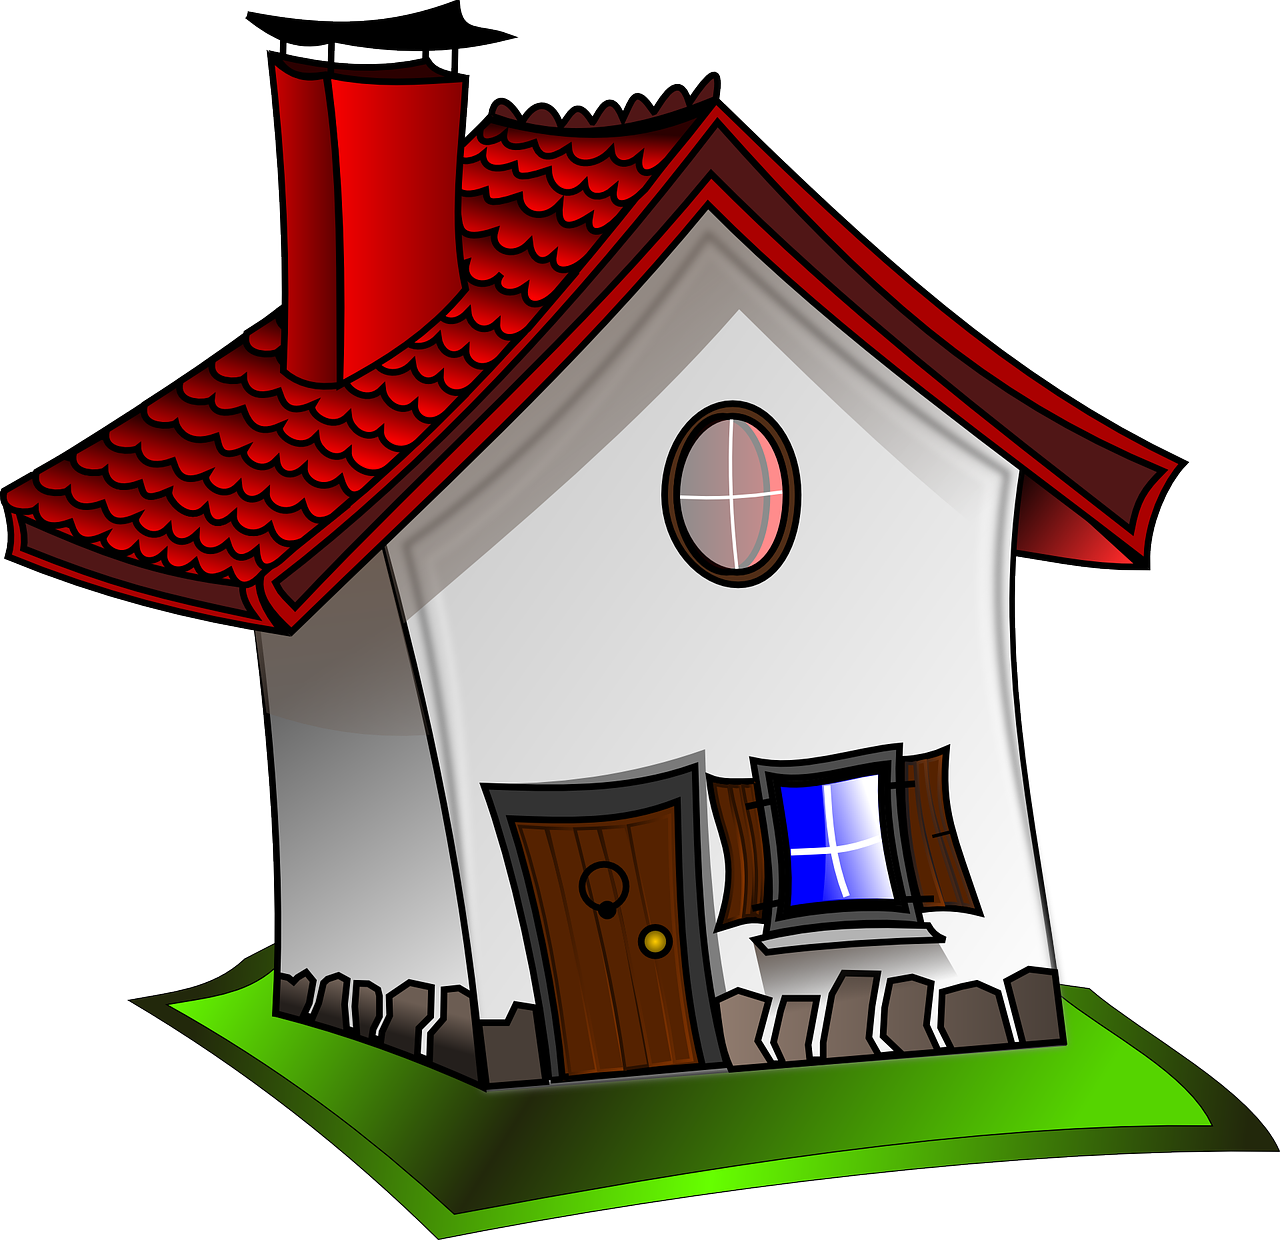 Rooftop clipart property maintenance  the Roof Companies on